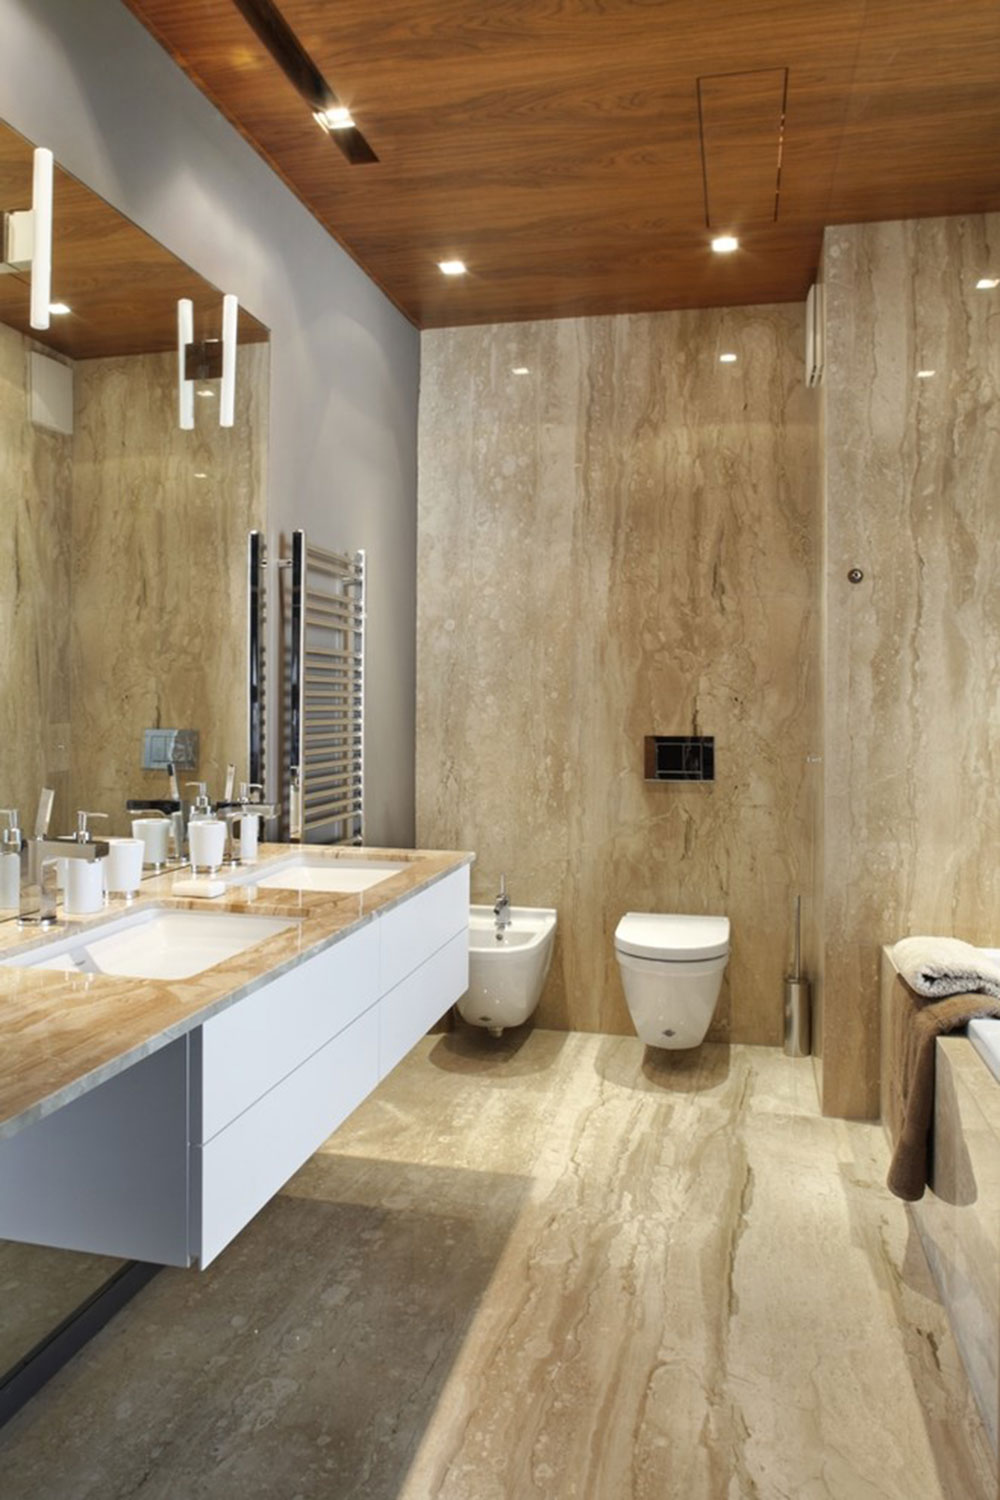 For-more-space-use-wall-mounted toilet-11 wall-mounted toilet ideas